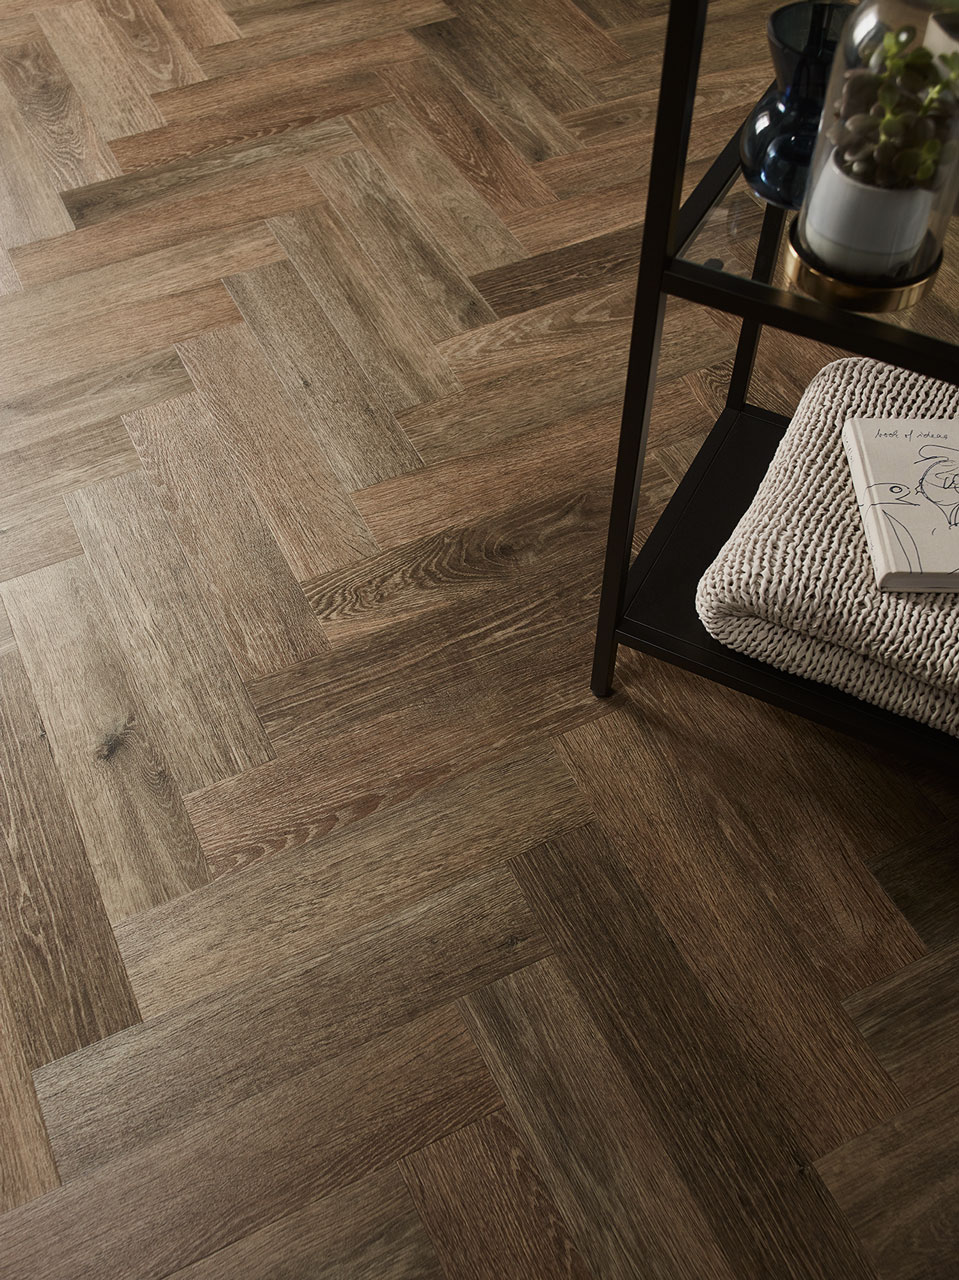 Amtico Spacia parquet in Noble Oak - available from Flooring 4 You Ltd in Cheshire